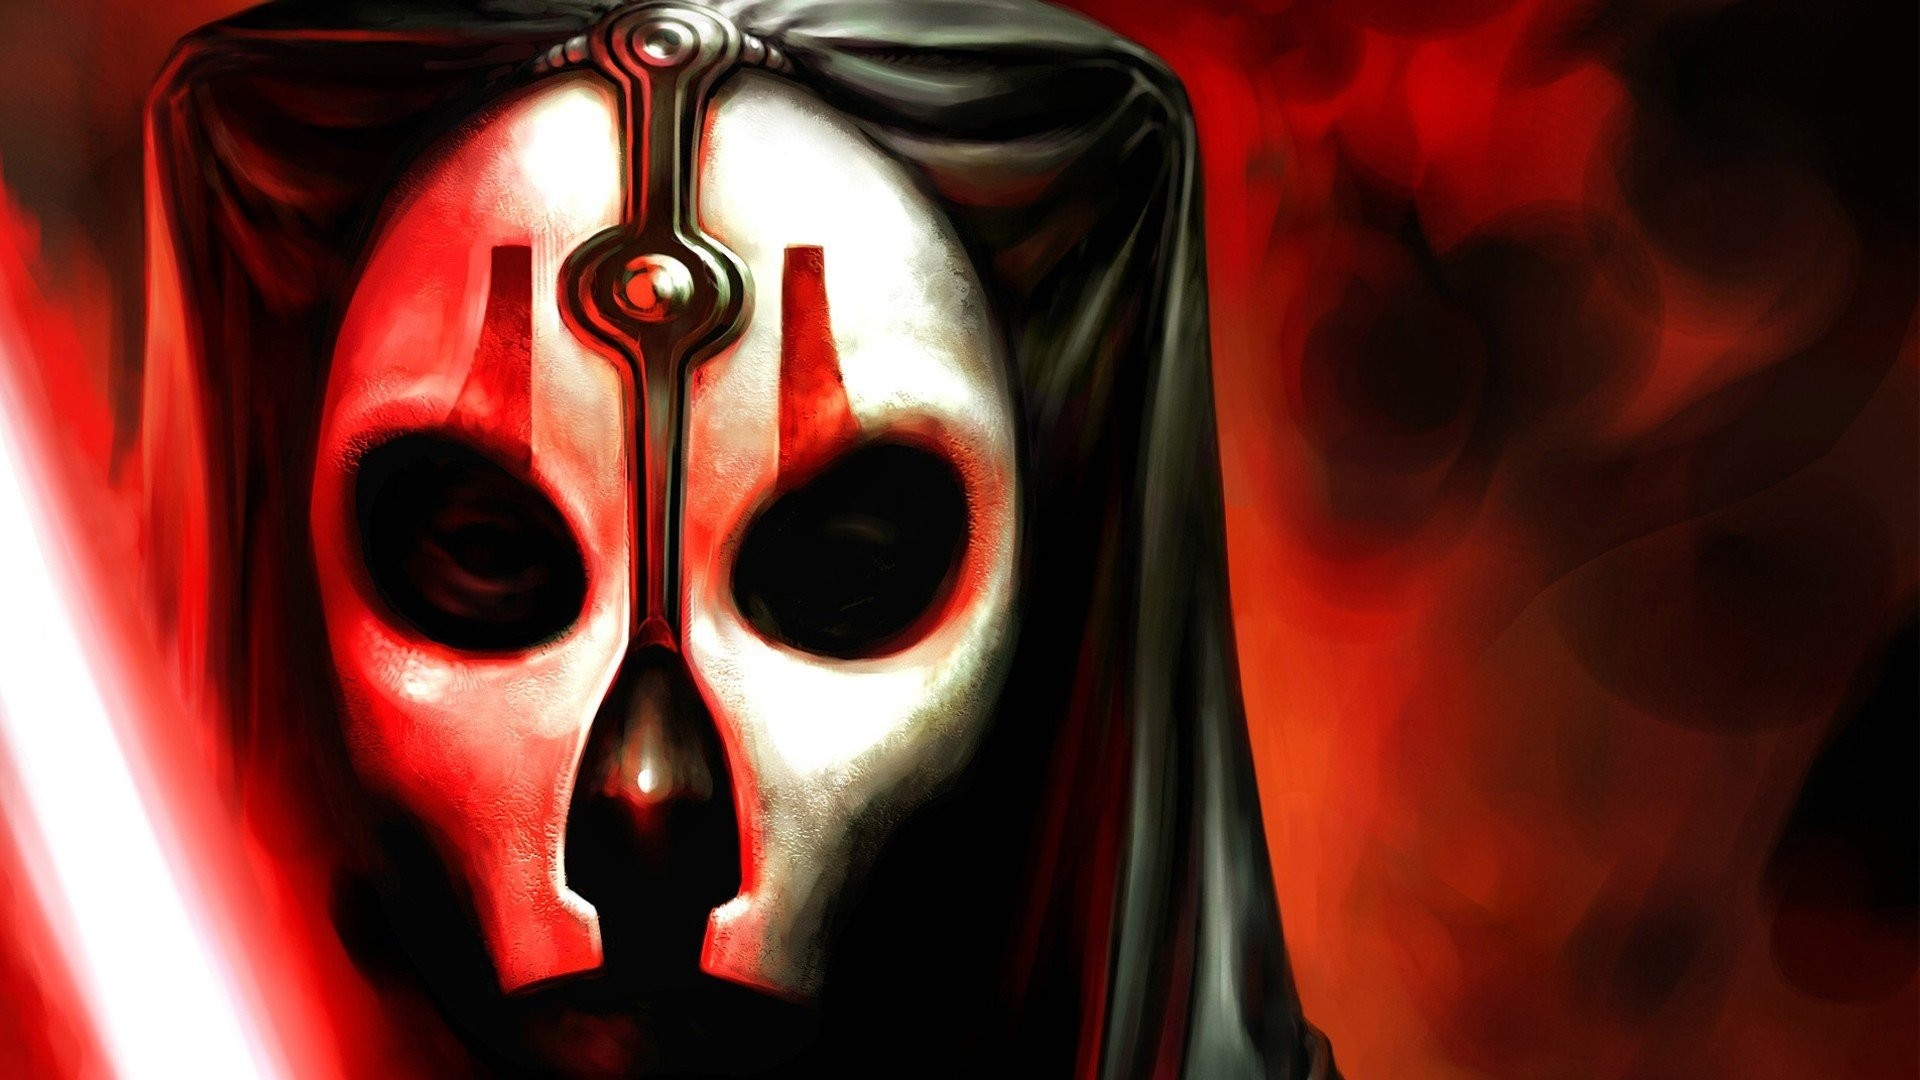 Star Wars Sith Wallpapers Photo As Wallpaper HD